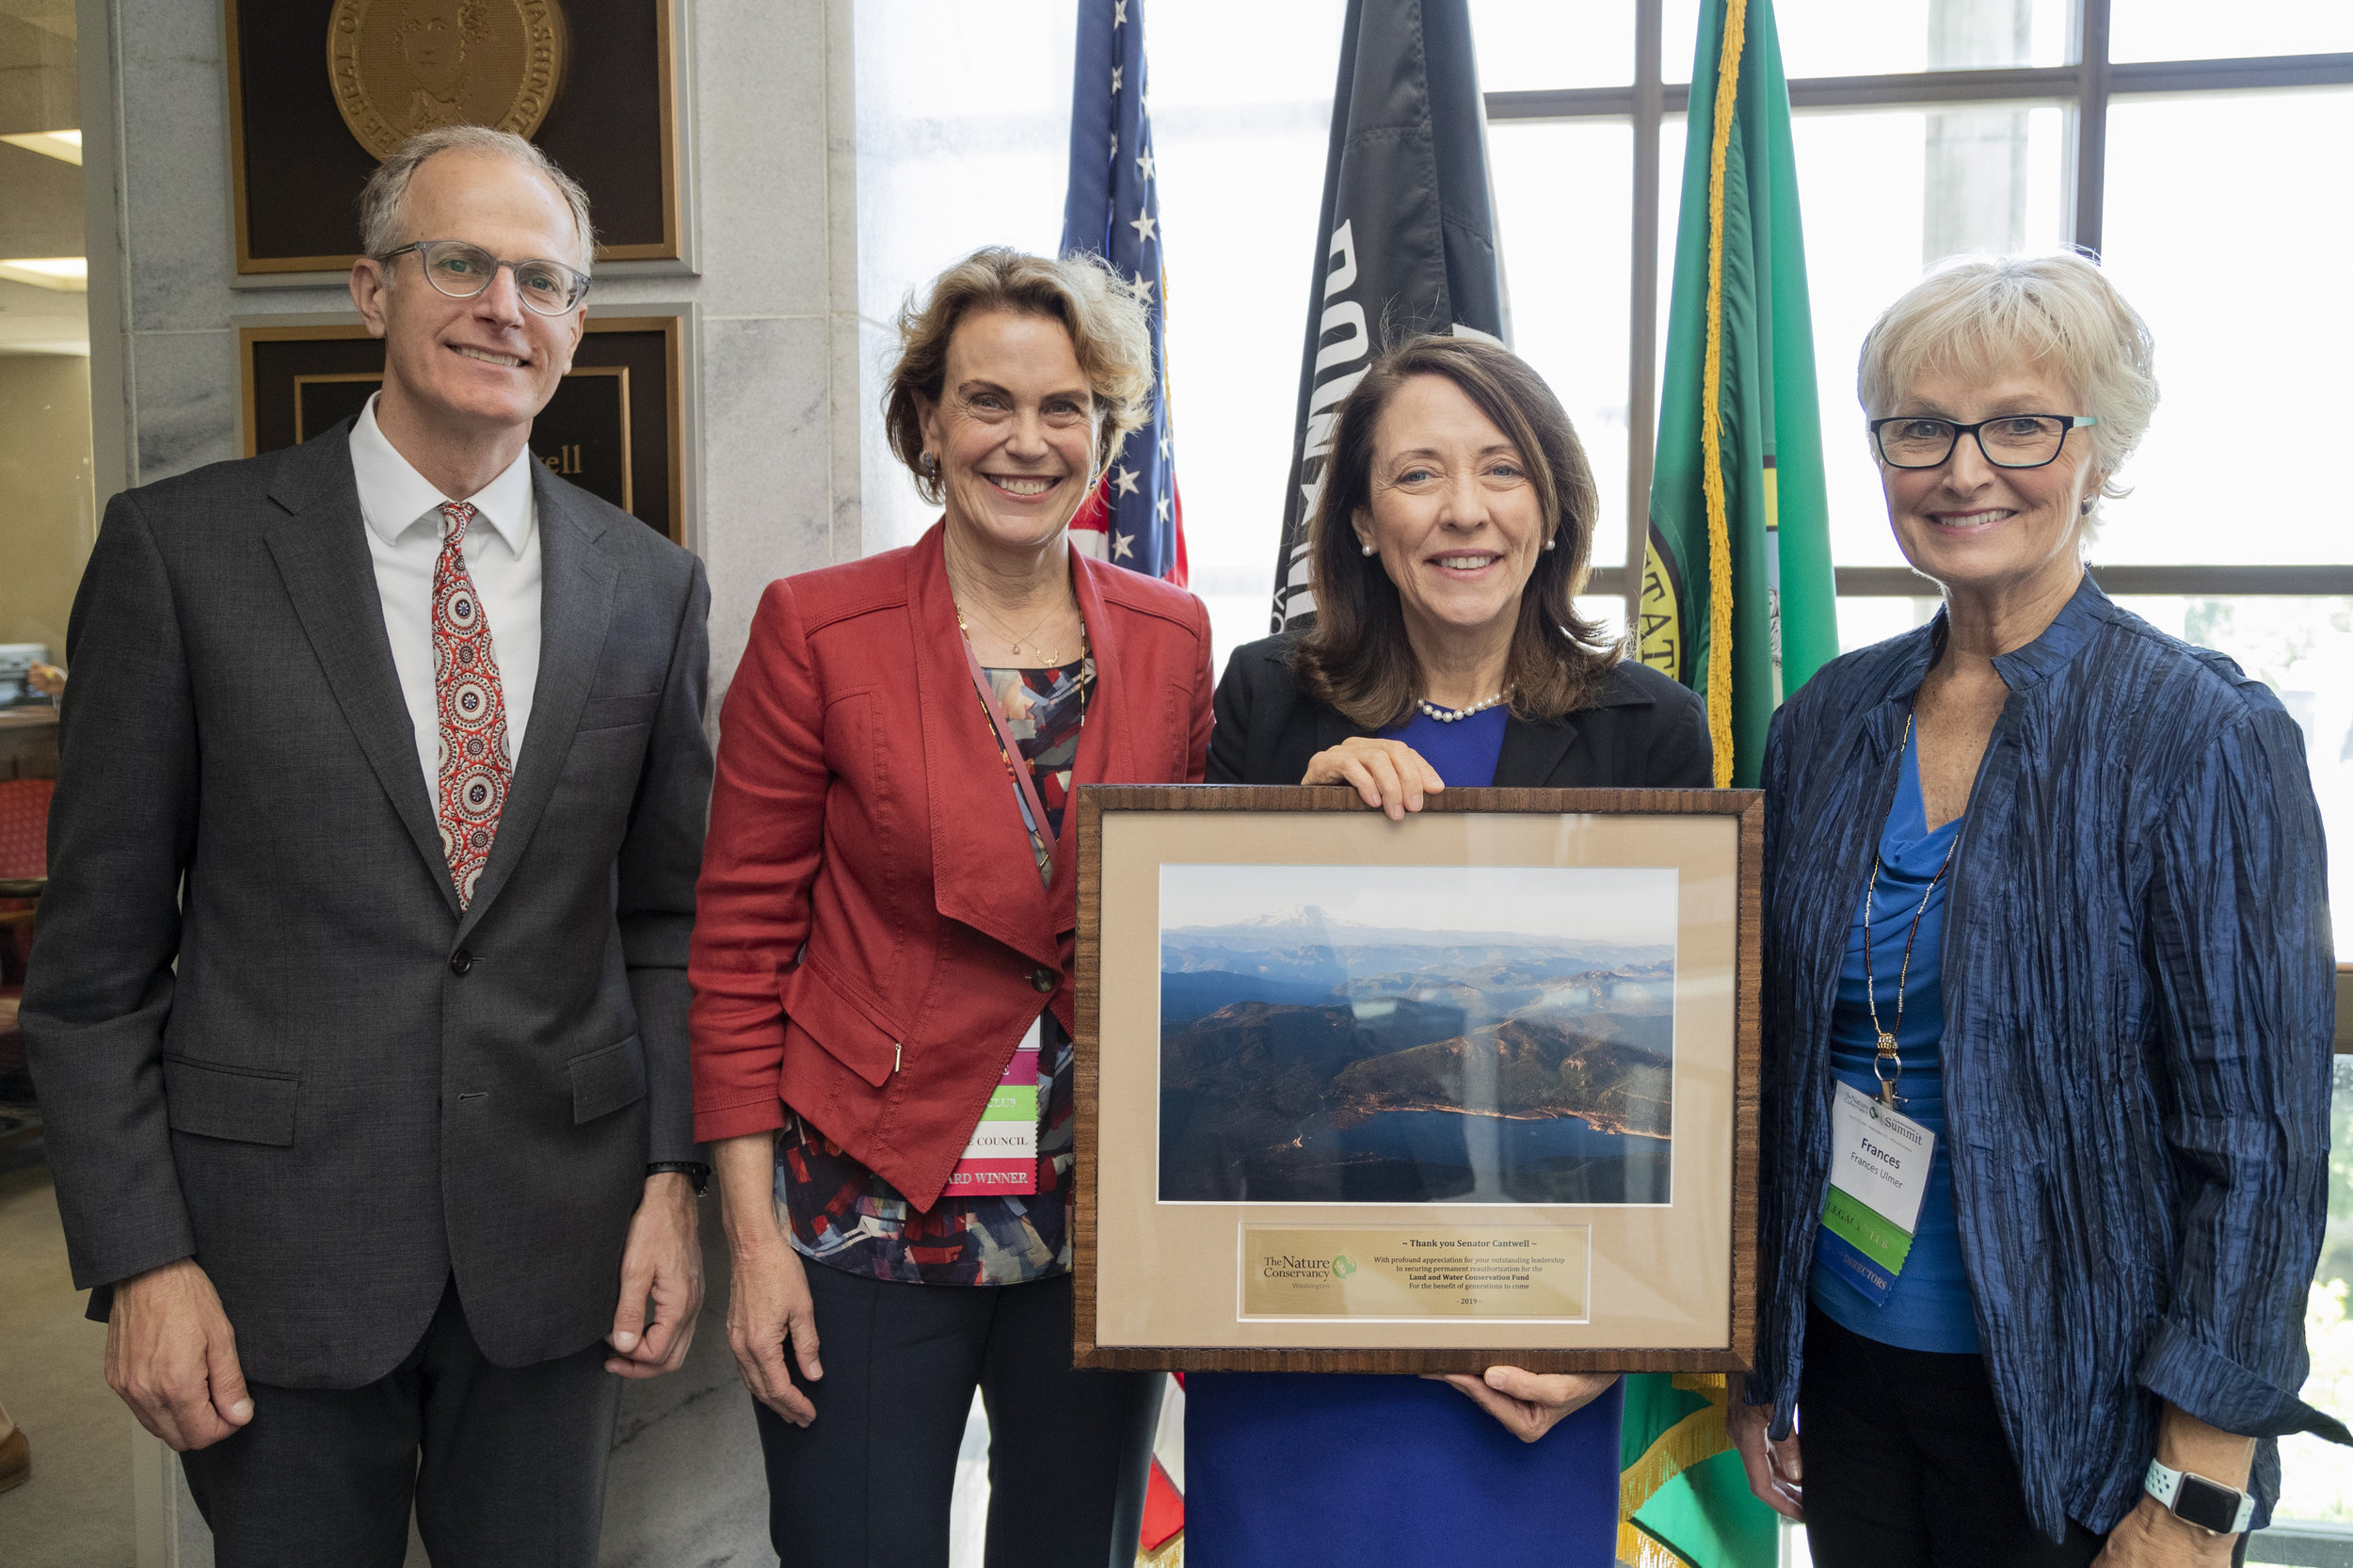 We thanked Senator Cantwell for her tremendous leadership to save the Land and Water Conservation Fund during our Advocacy Day meeting on June 12. From left, Washington state director Mike Stevens, state Board chair Kate Janeway, Senator Cantwell and TNC Global Board Chair Fran Ulmer. TNC photo.